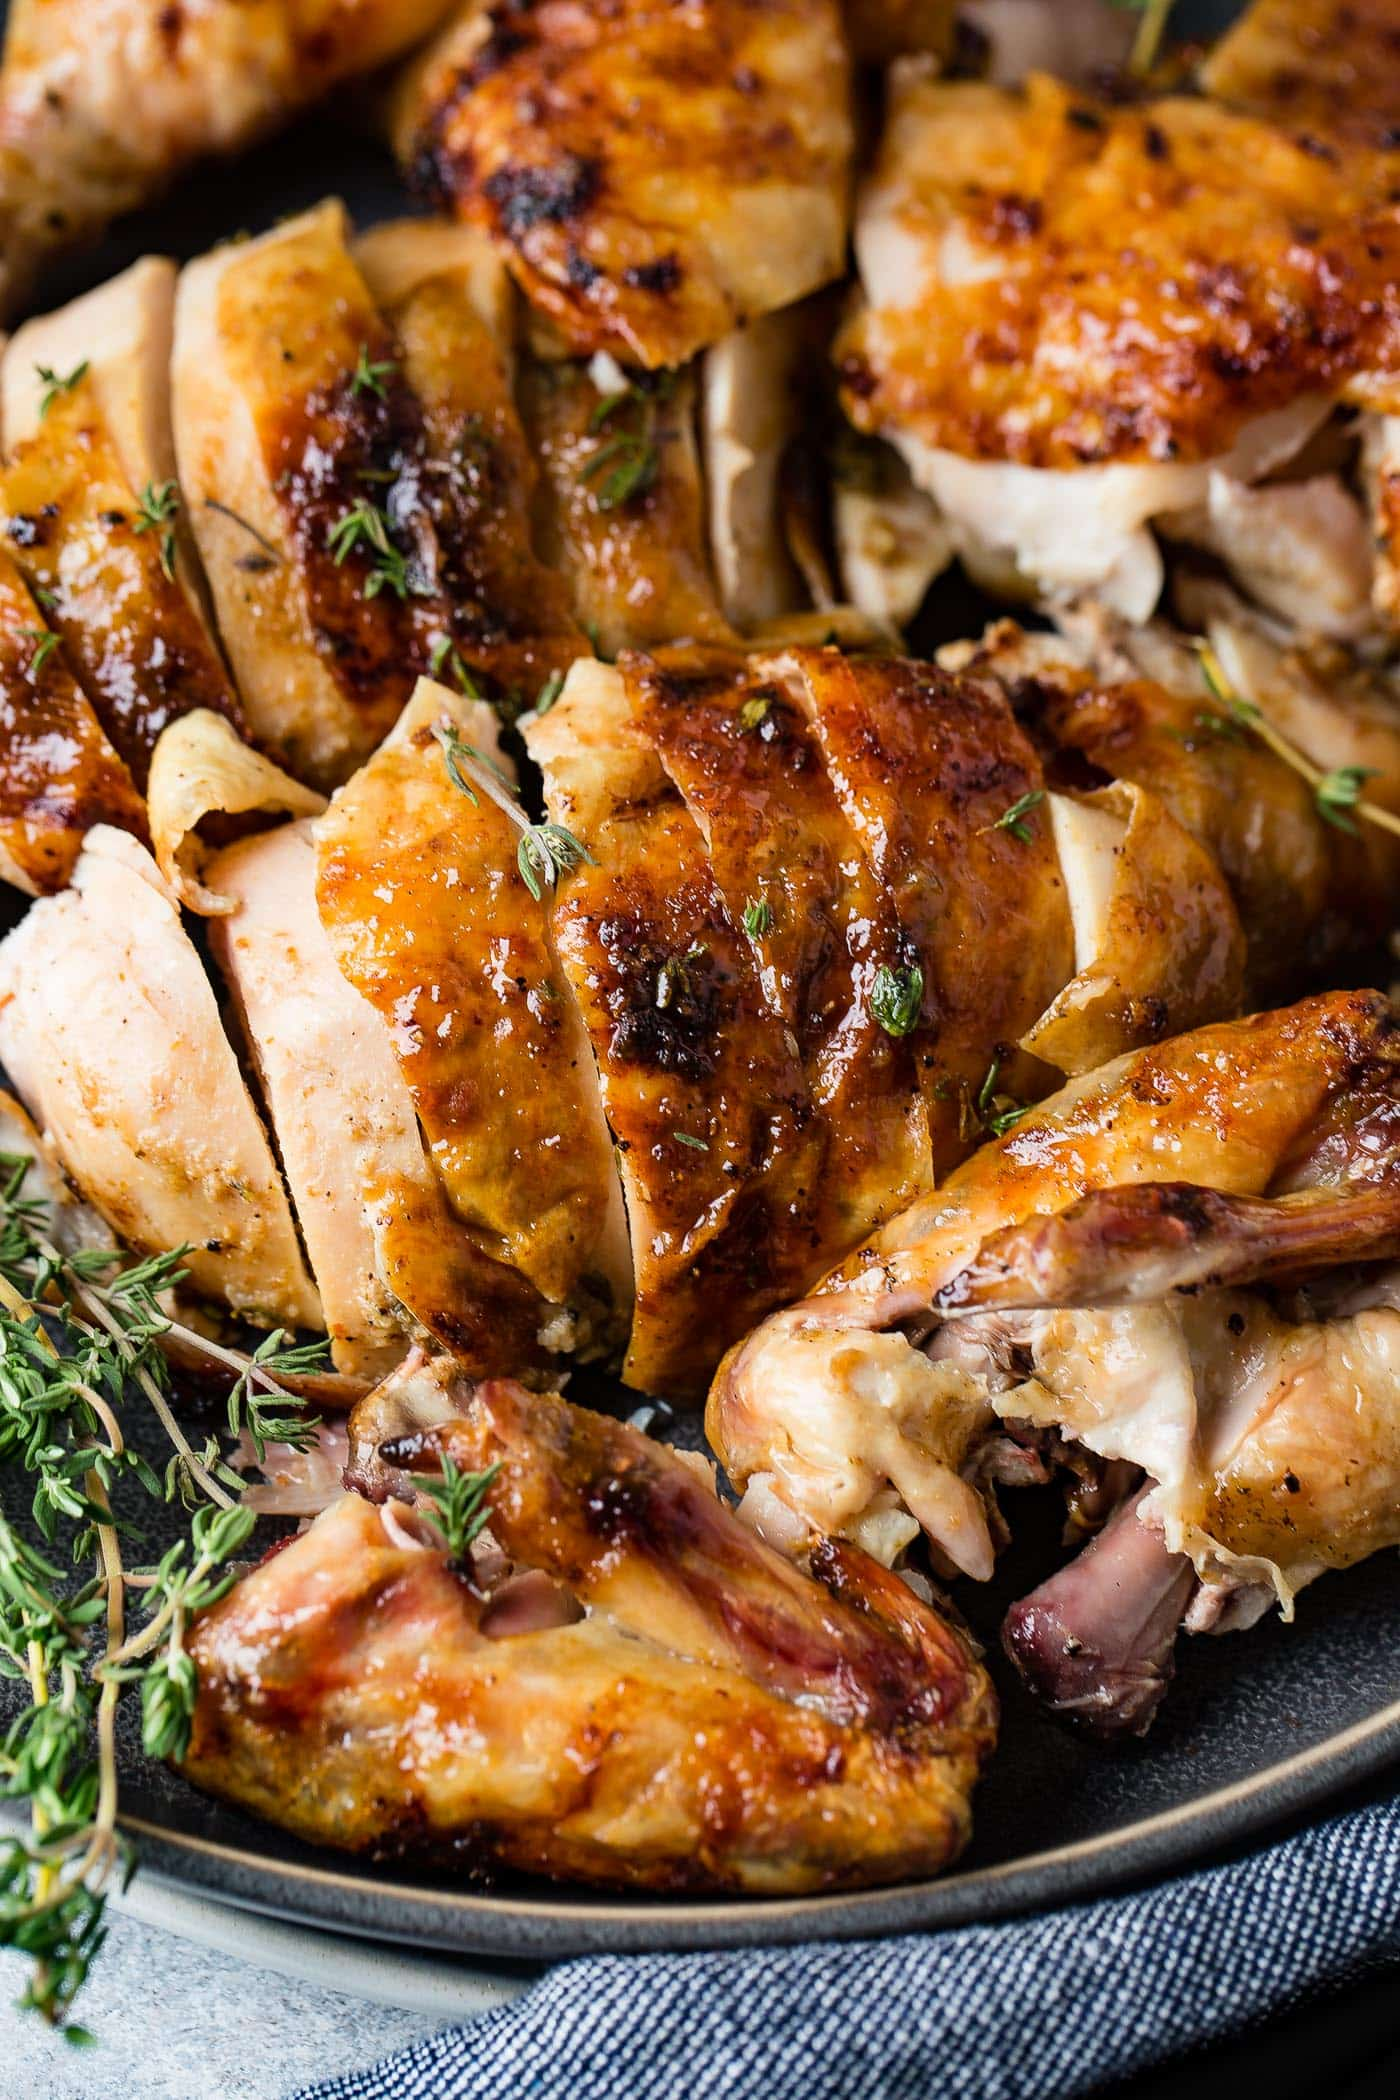 Smoked Whole Chicken Recipe Traeger Whole Chicken Oh Sweet Basil